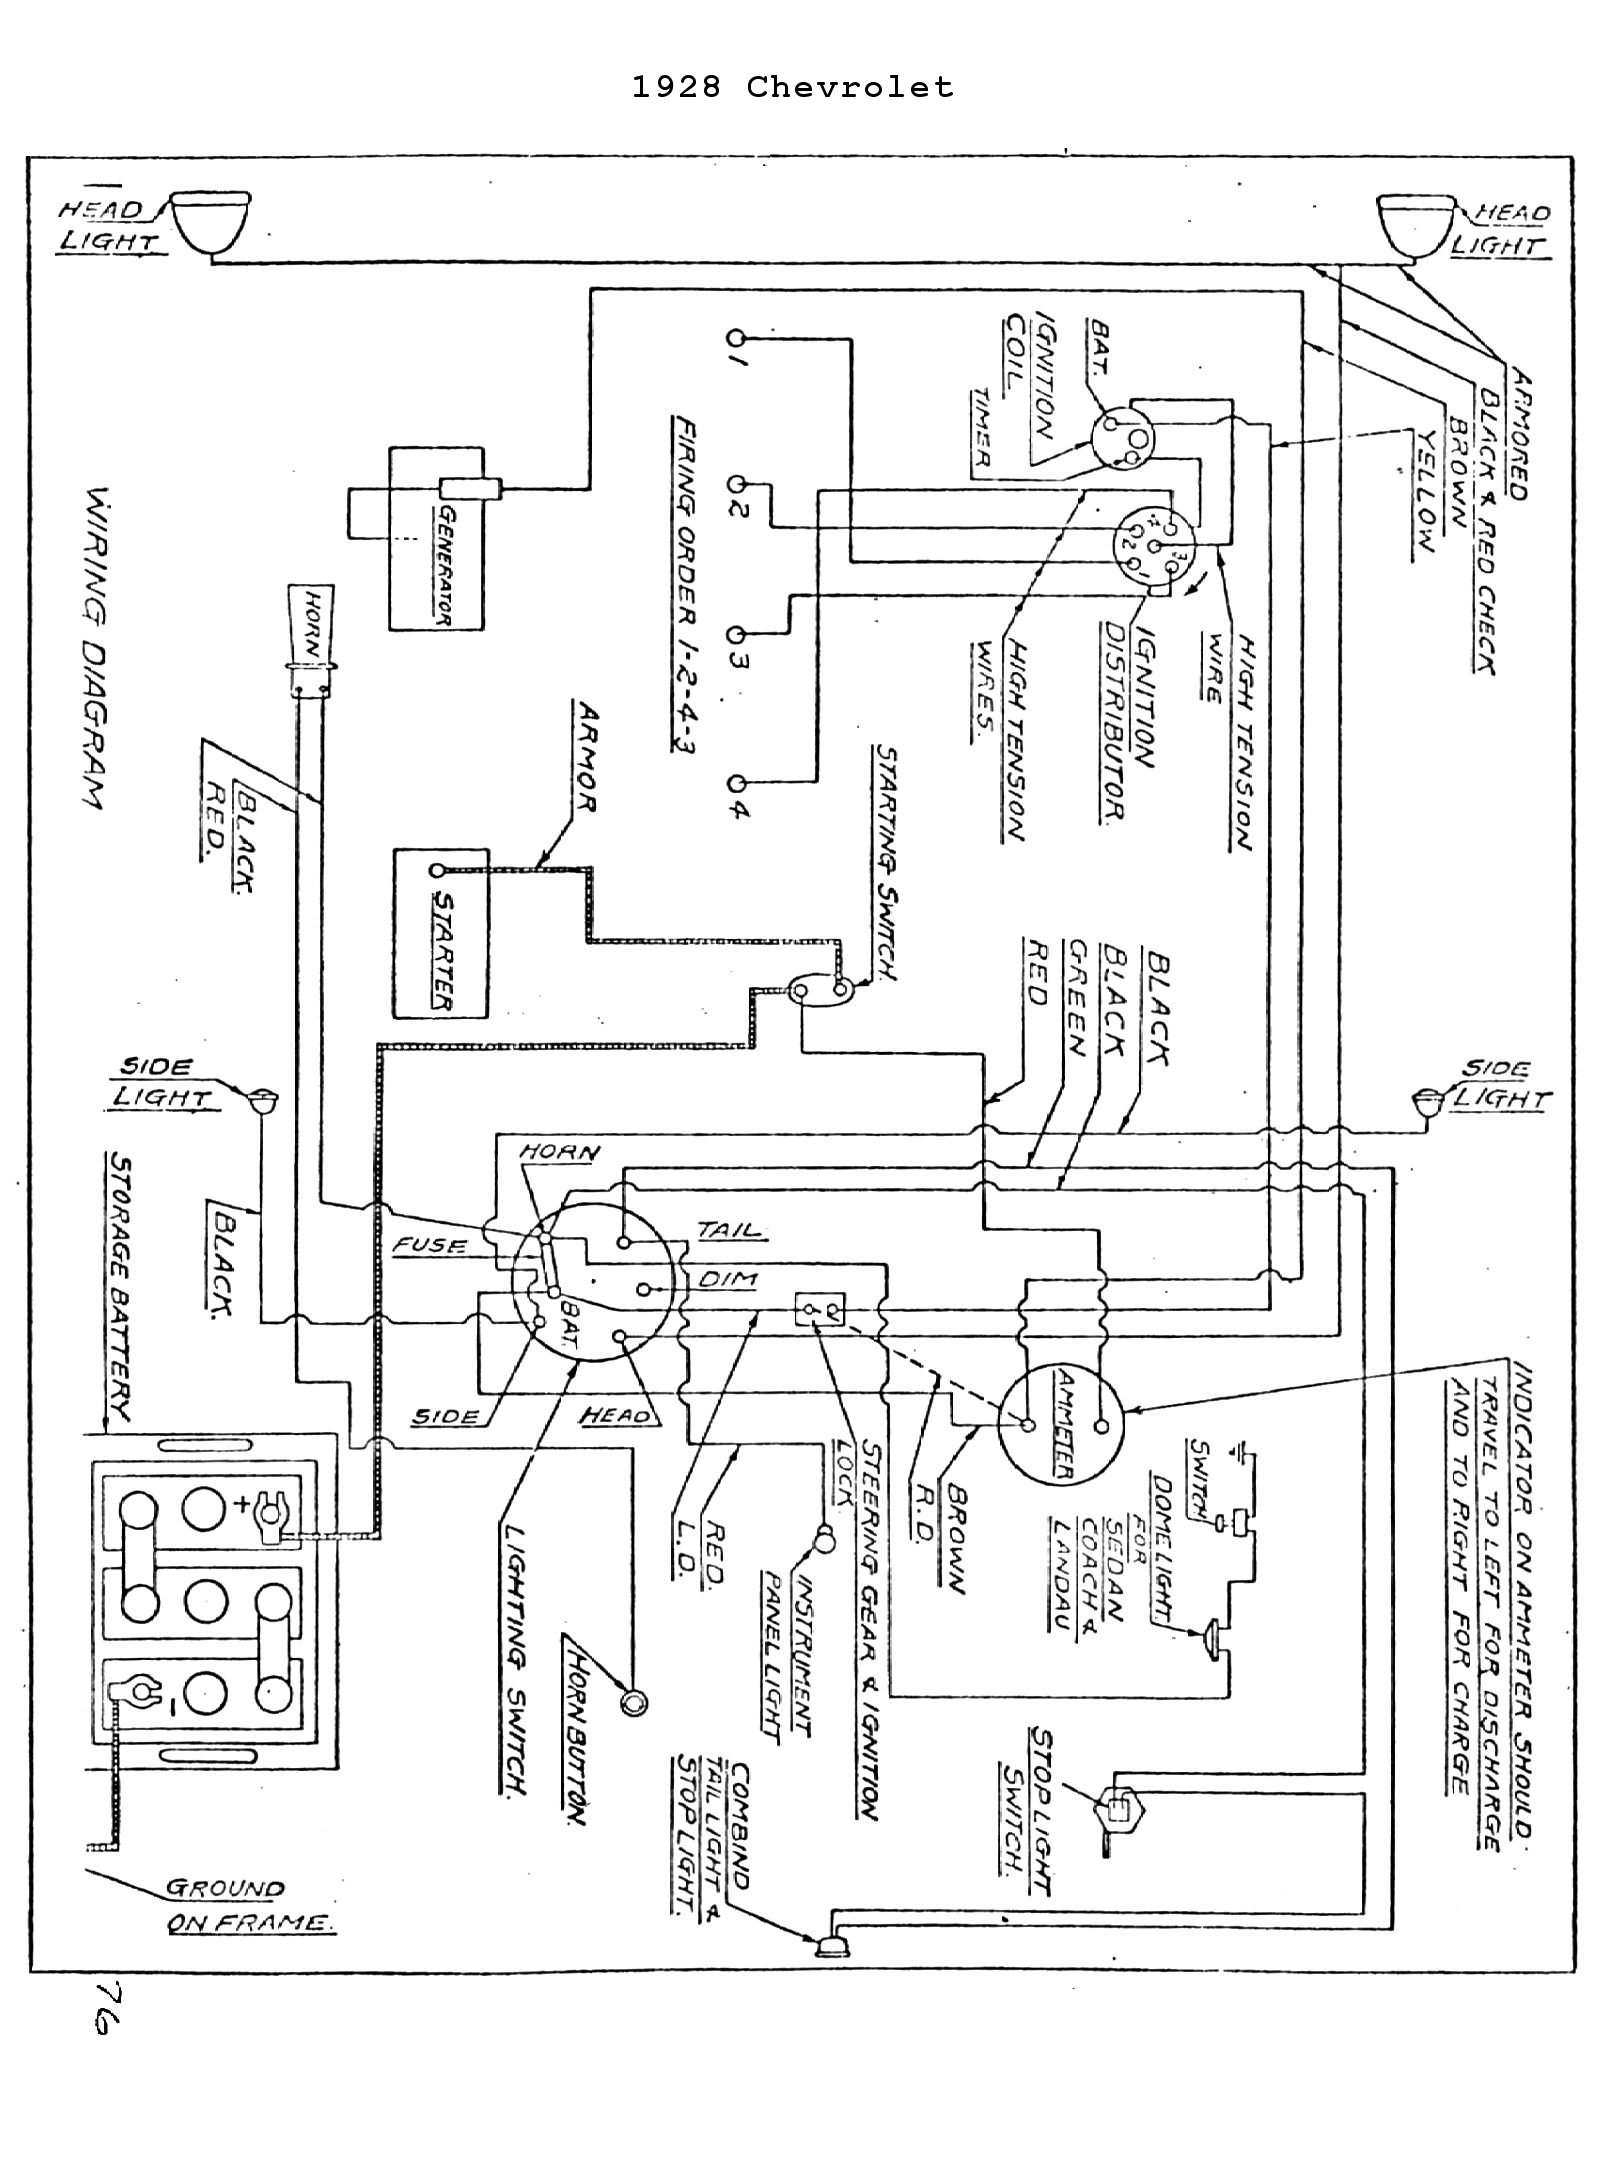 1928 Chevy Wire Diagram Wiring Schematic Jeep Wrangler Steering Column Diagrams Automotive